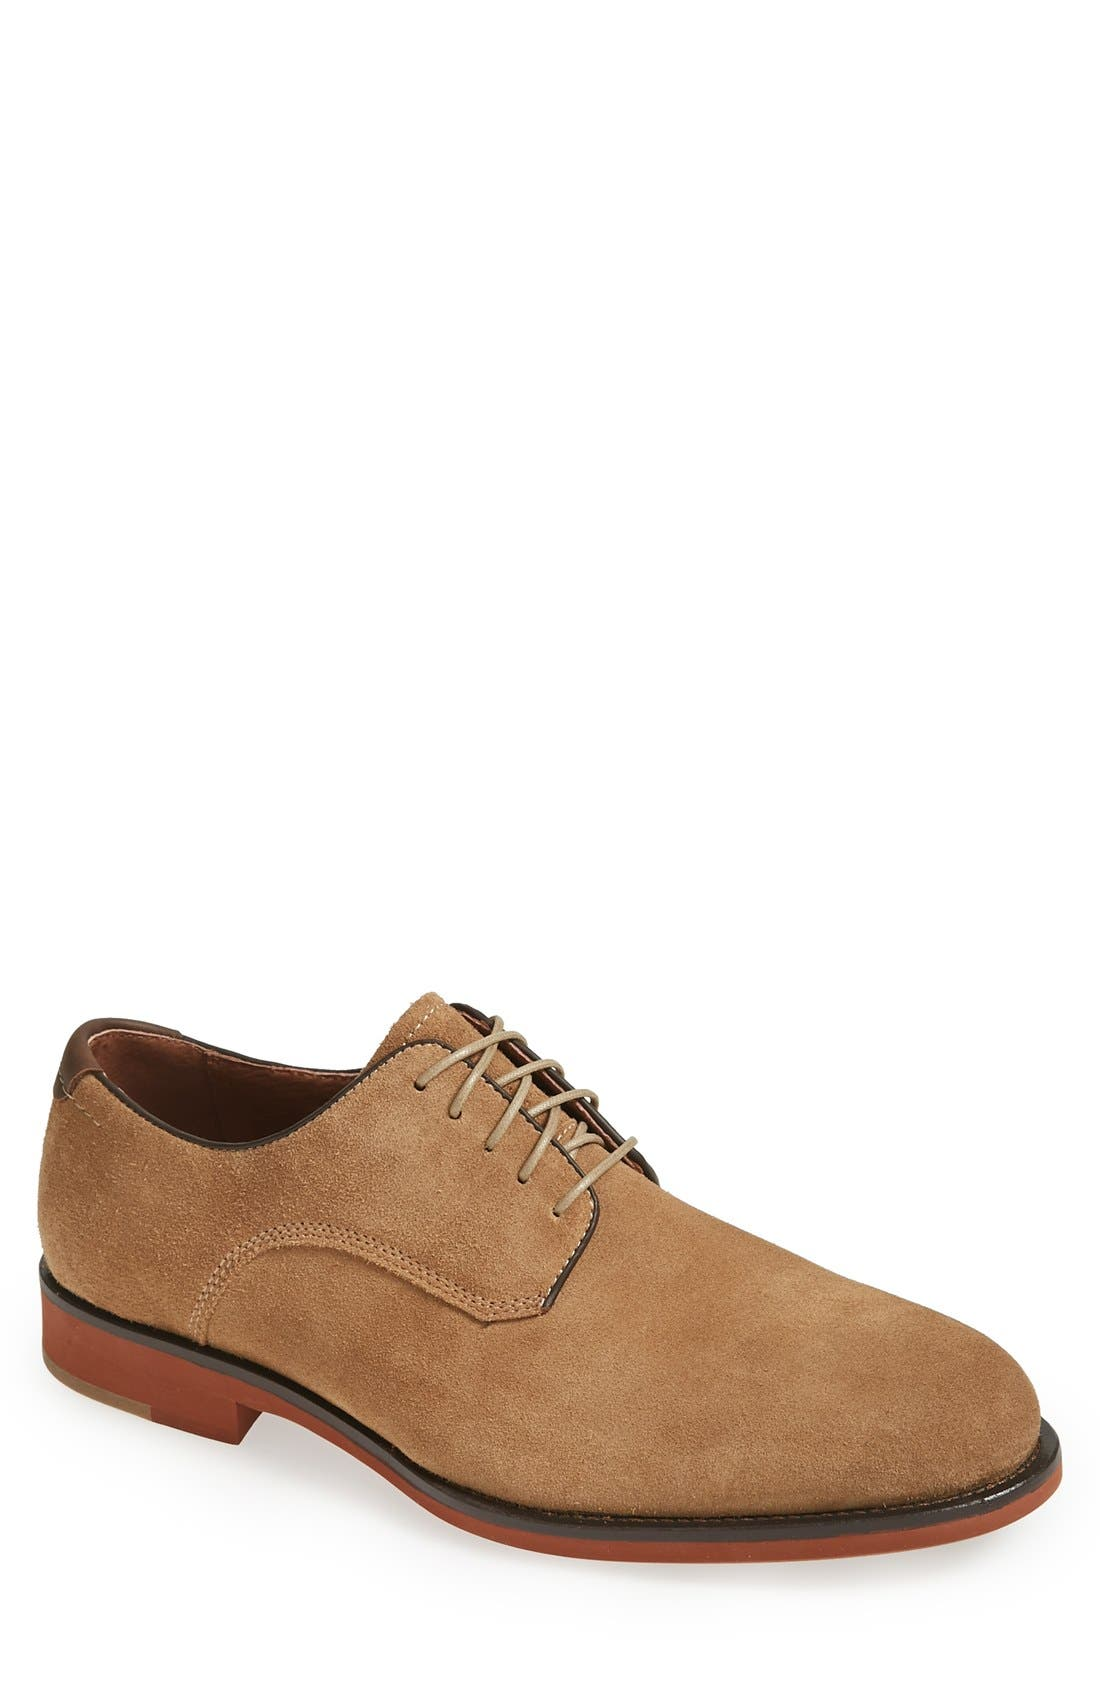 Alternate Image 1 Selected - Johnston & Murphy 'Ellington' Suede Buck Shoe (Men)